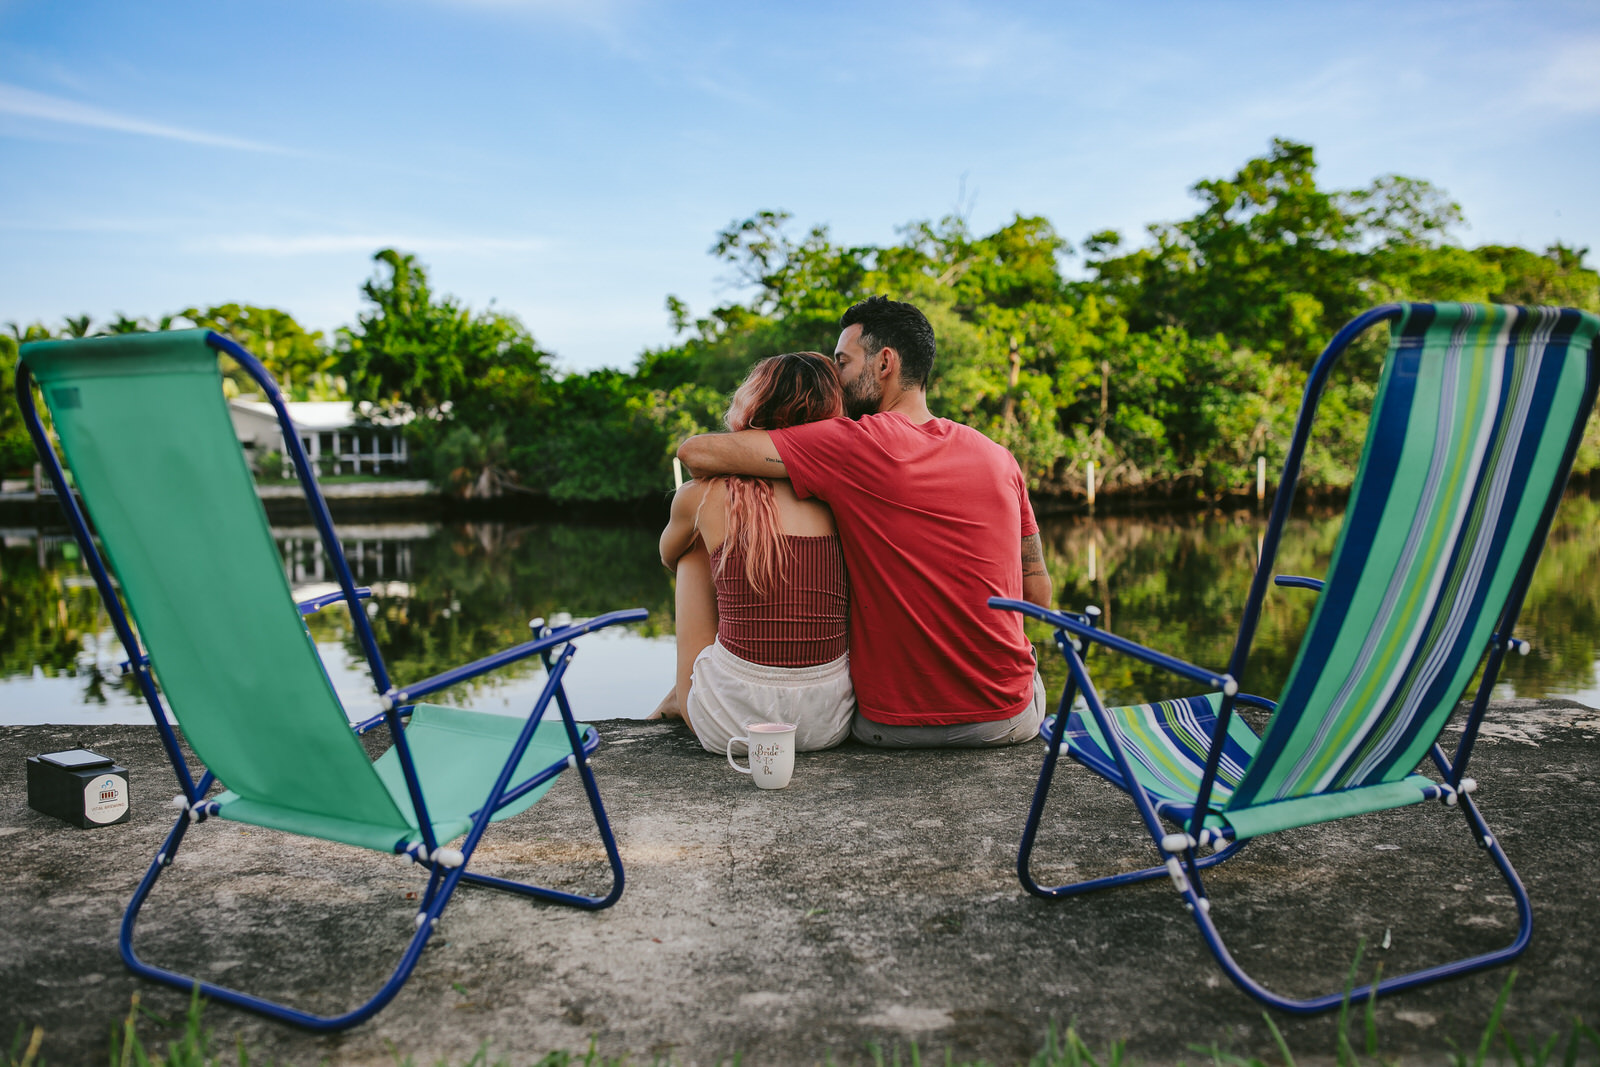 fort-lauderdale-engagement-day-in-the-life-session-morning-coffee-couple-tiny-house-photo-61.jpg